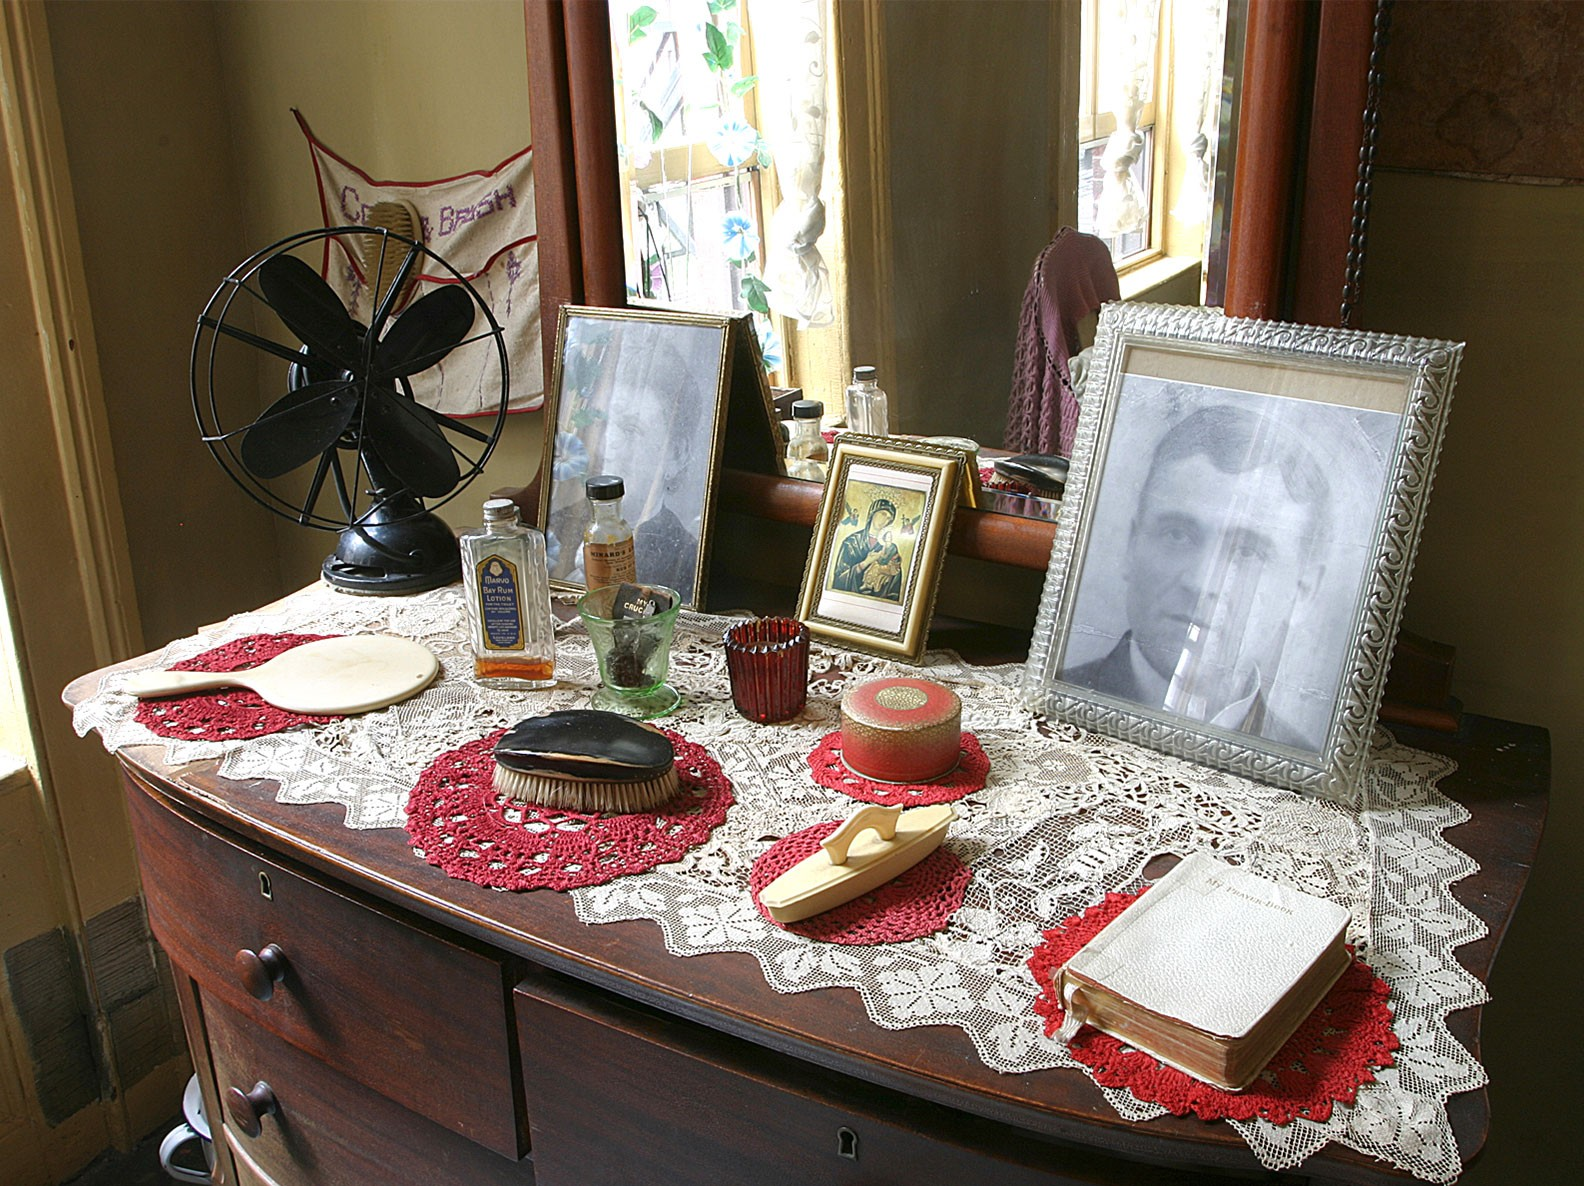 Dresser with family objects displayed in the recreated Baldizzi family parlor inside 97 Orchard Street